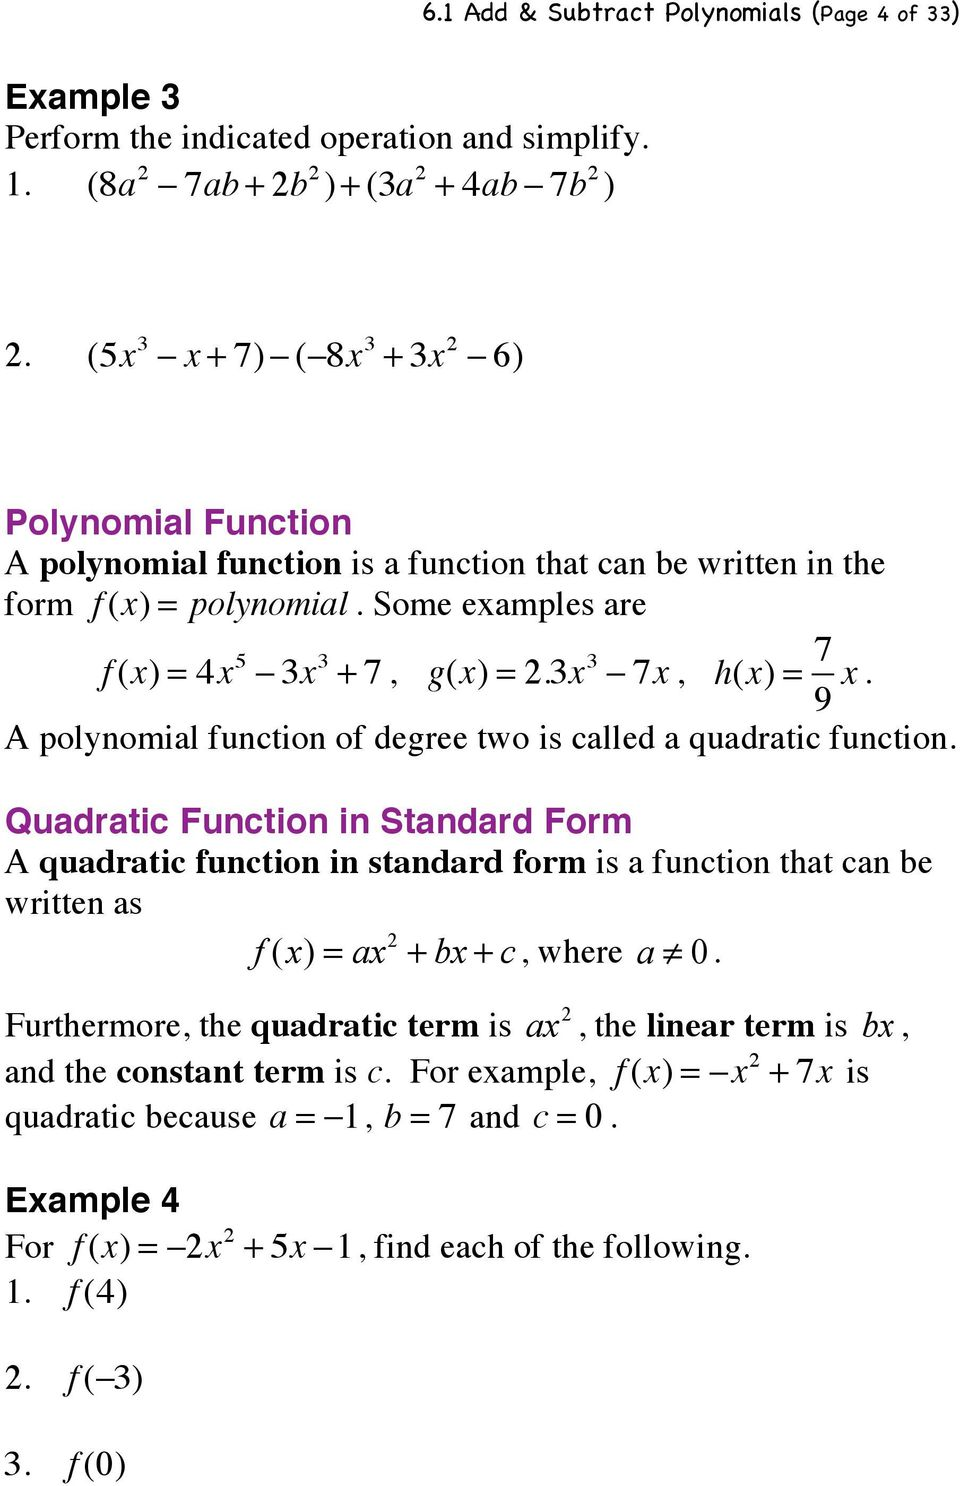 A polynomial function of degree two is called a quadratic function.